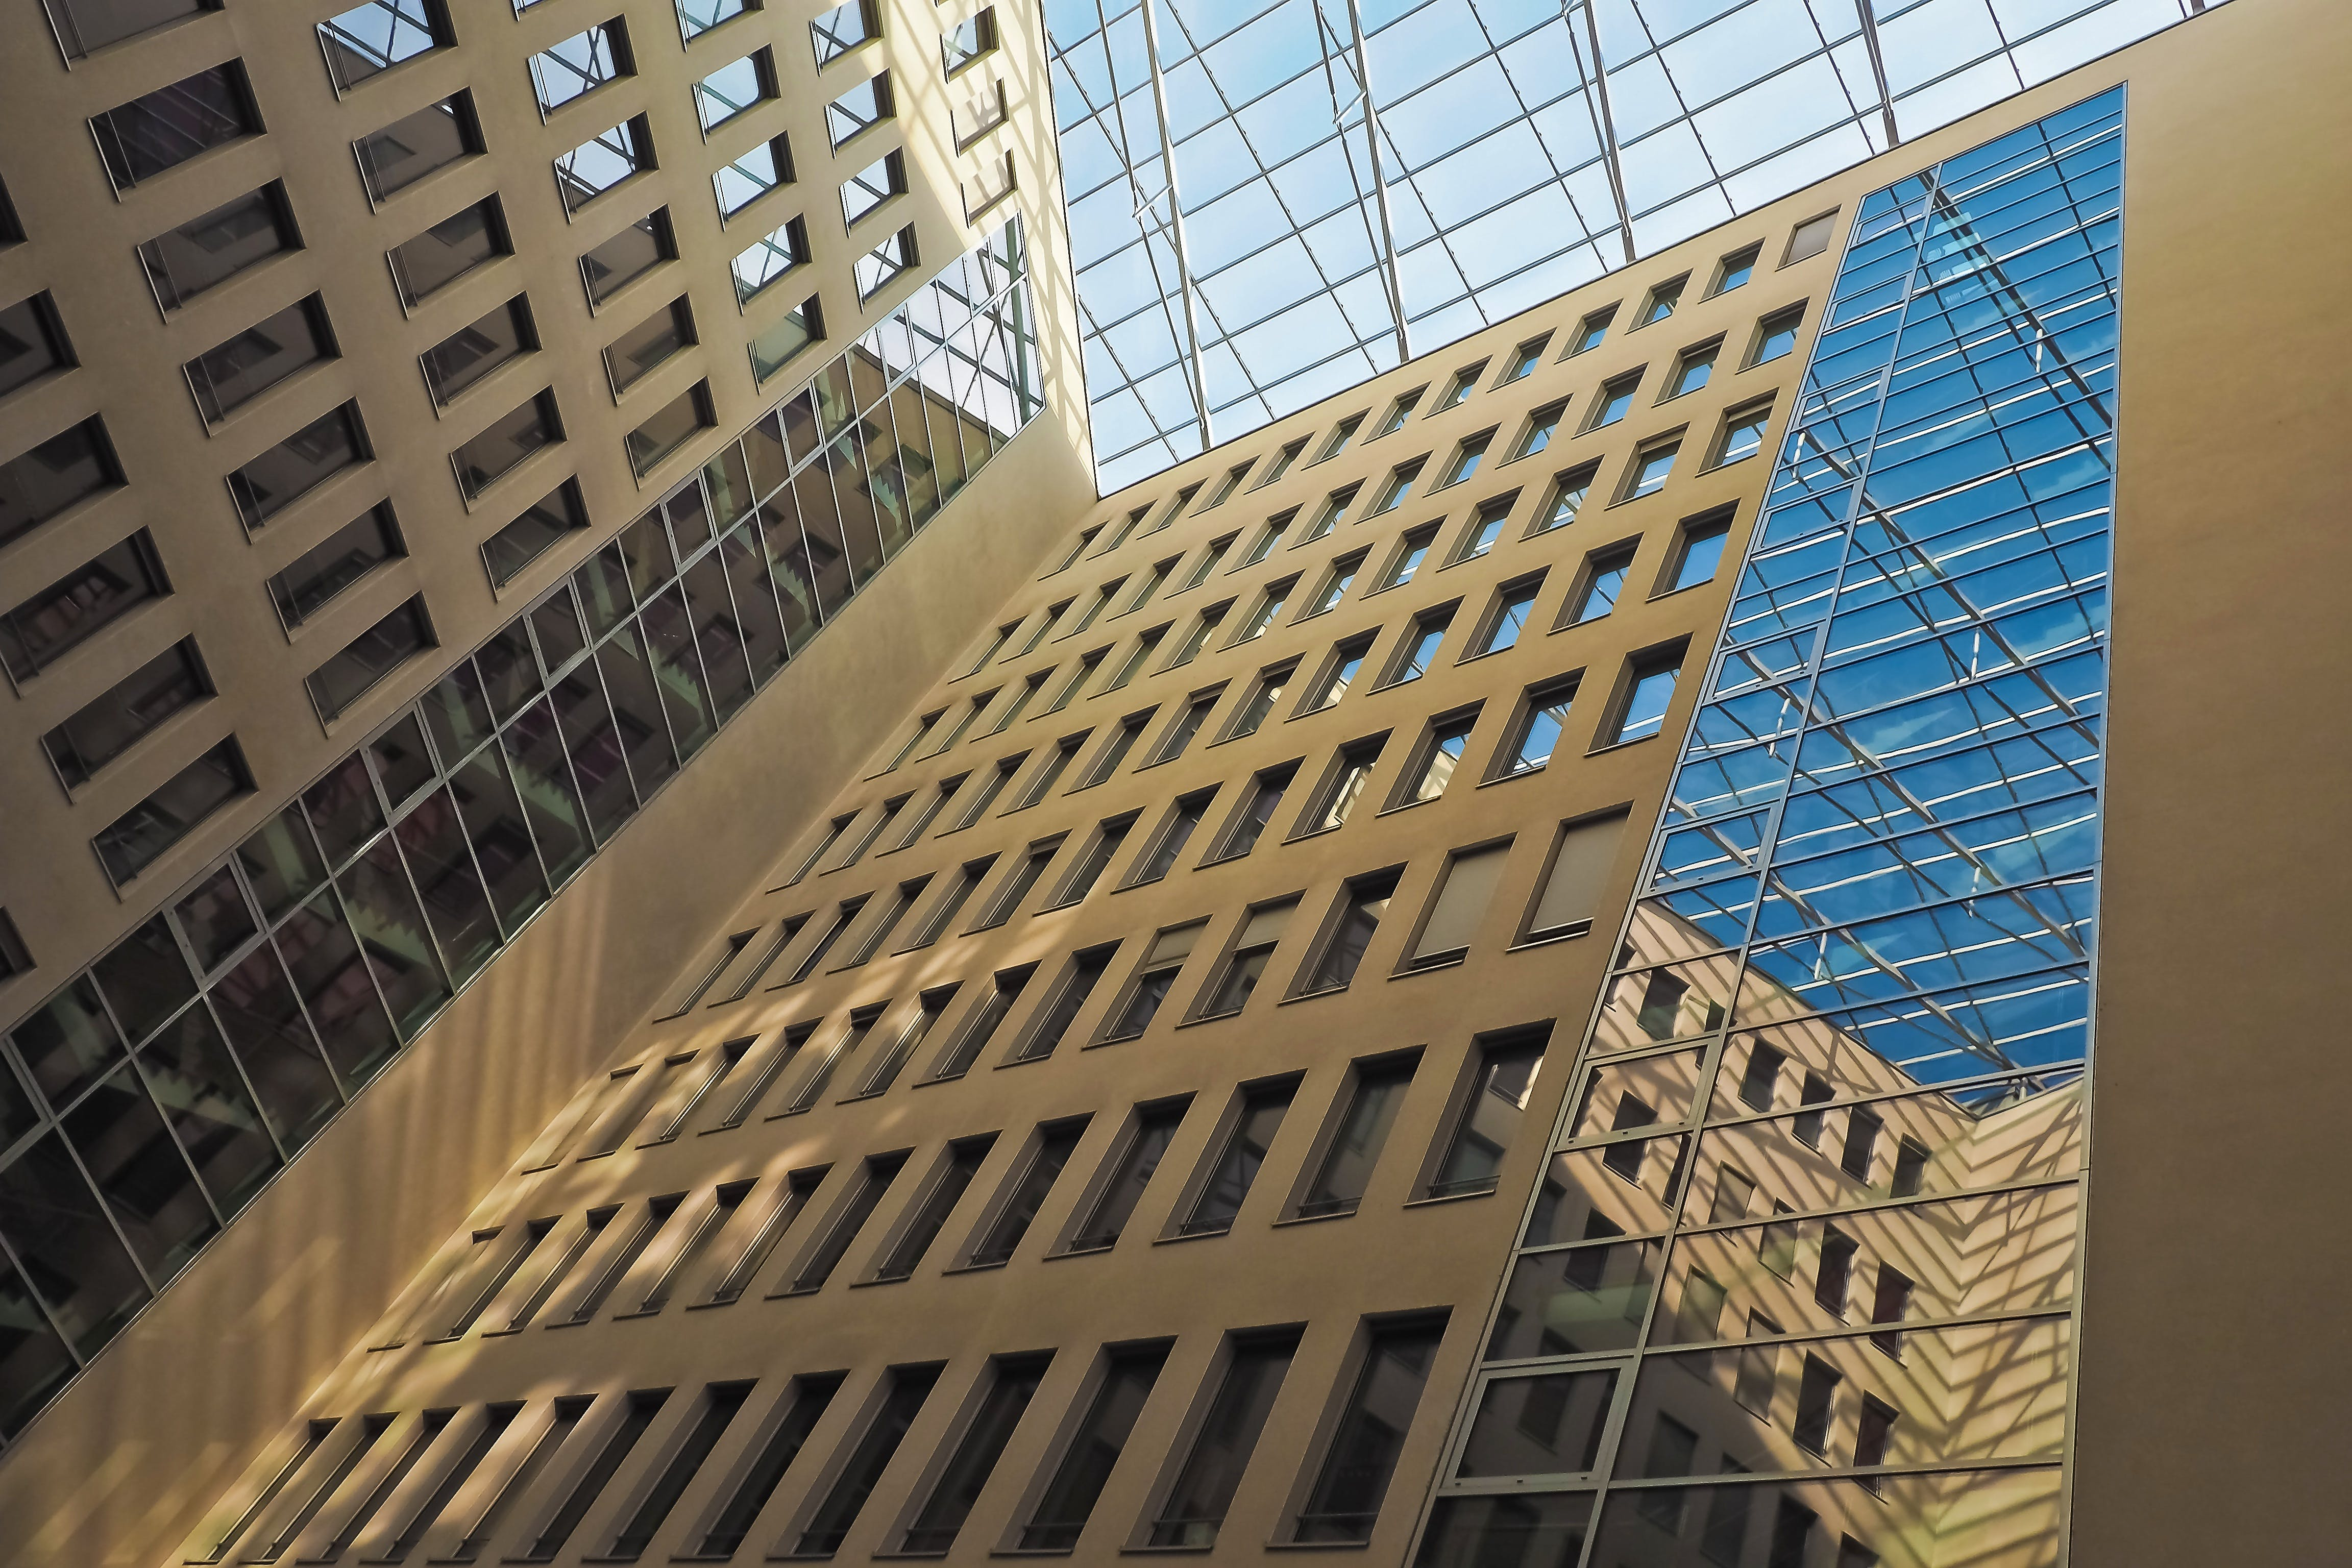 Free stock photo of building, office, architecture, reflection